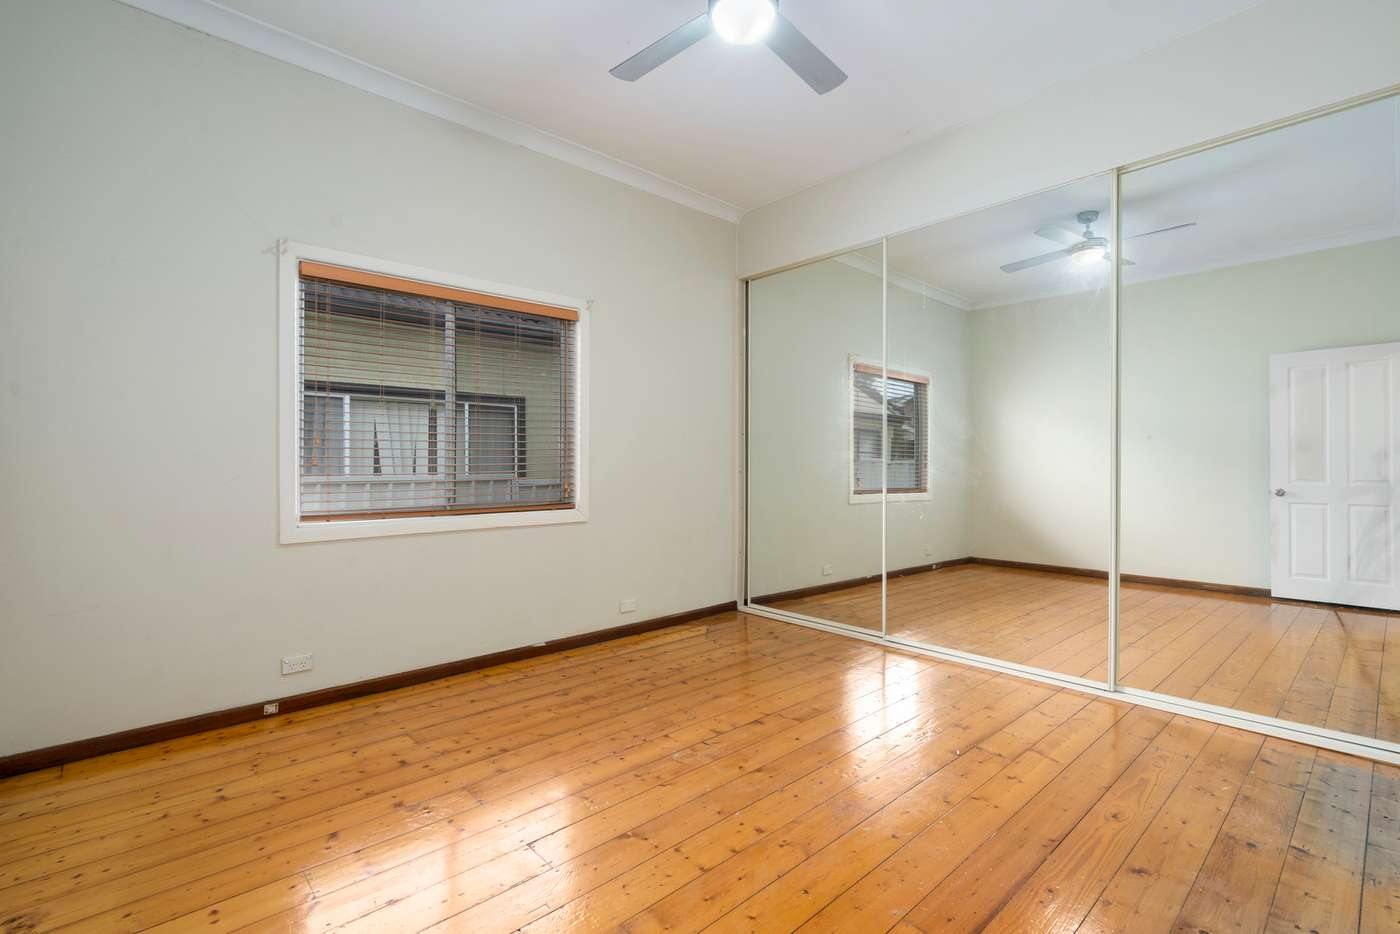 Sixth view of Homely house listing, 28a Union Road, Auburn NSW 2144